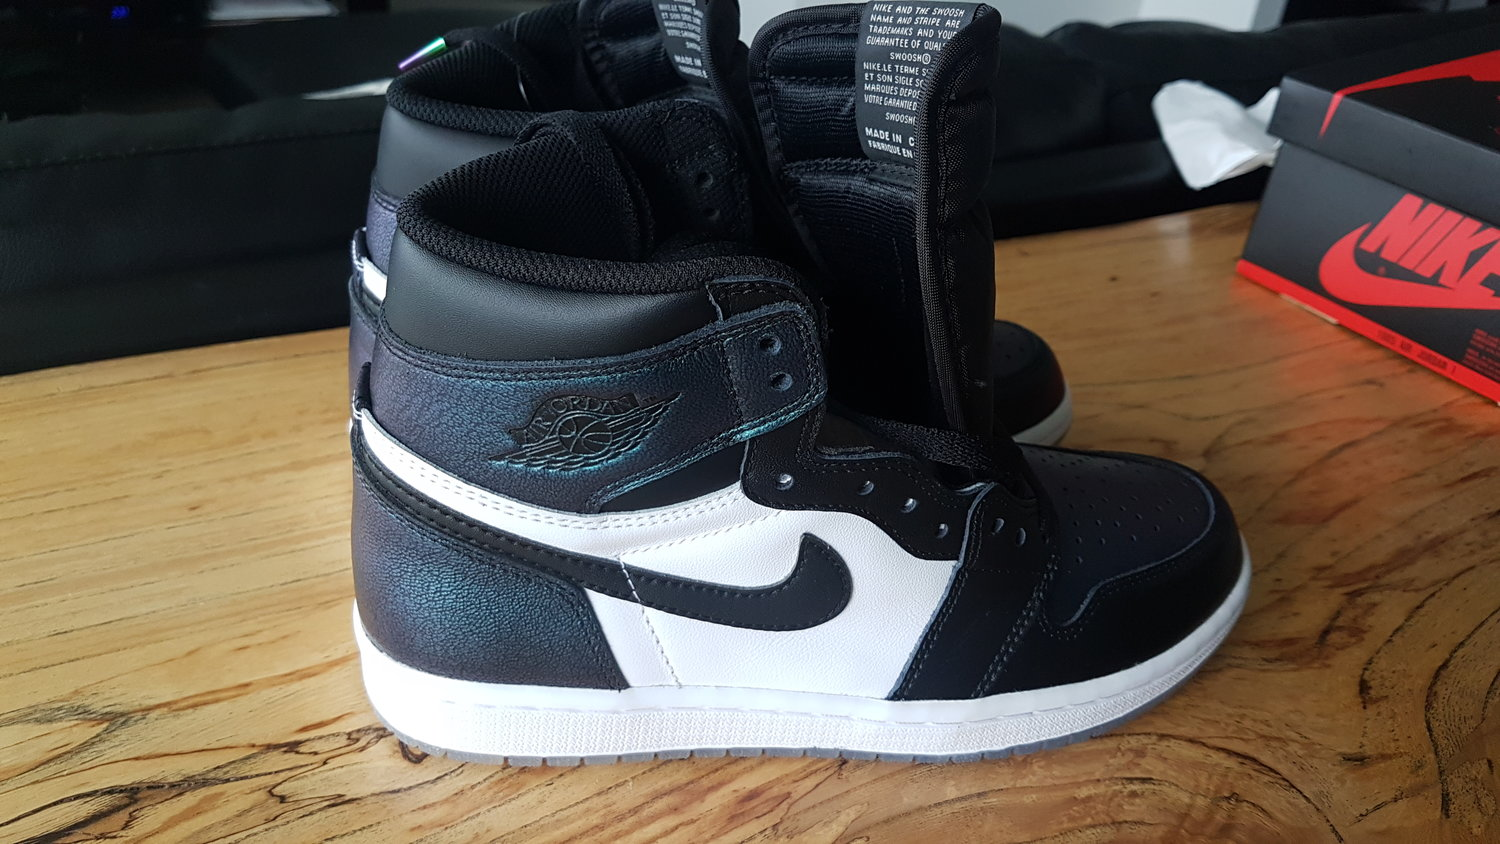 sold worldwide reliable quality top fashion Air Jordan 1 Retro - All Star 2016